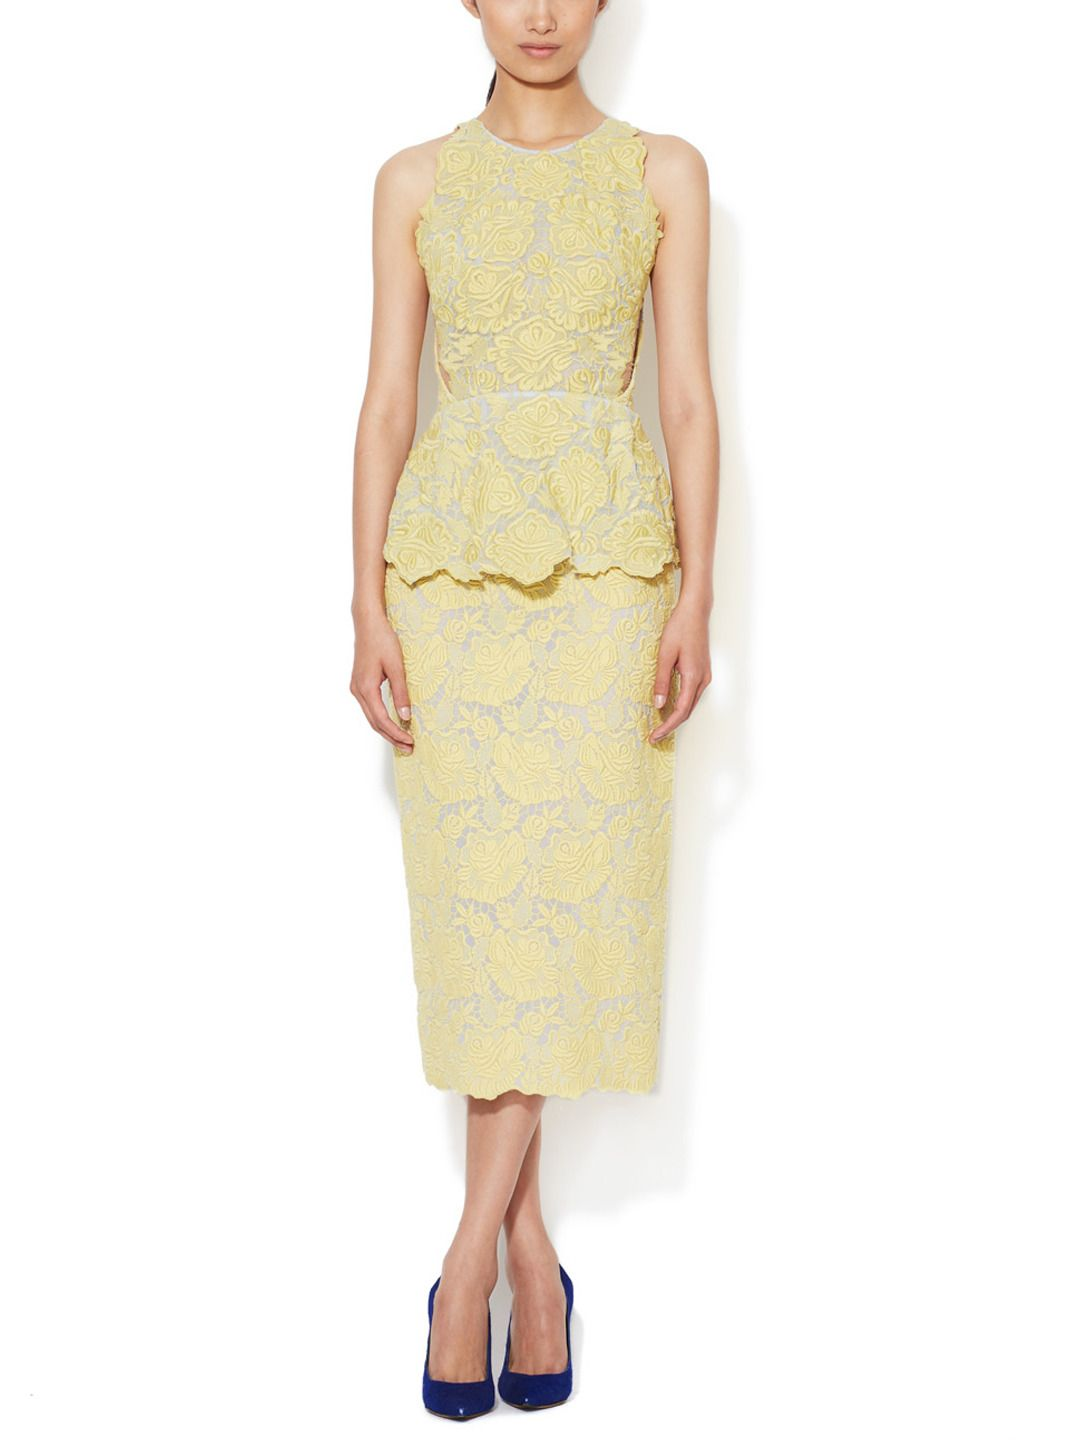 8aaf0bce5b4 Embroidered Overlay Peplum Dress from Stella McCartney Accessories    Apparel on Gilt